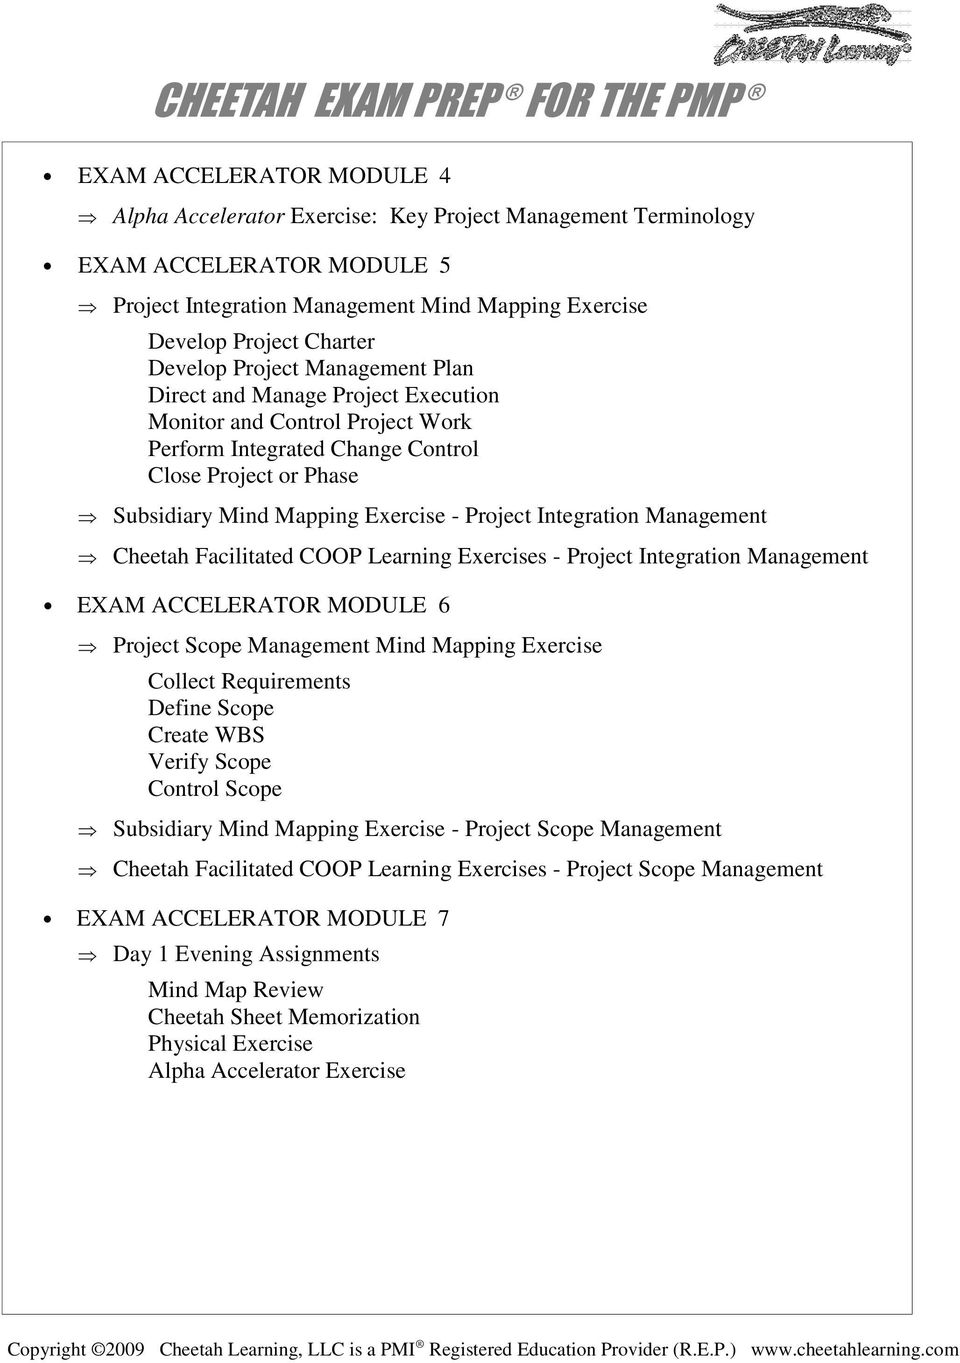 Integration Management Cheetah Facilitated COOP Learning Exercises - Project Integration Management EXAM ACCELERATOR MODULE 6 Project Scope Management Mind Mapping Exercise Collect Requirements